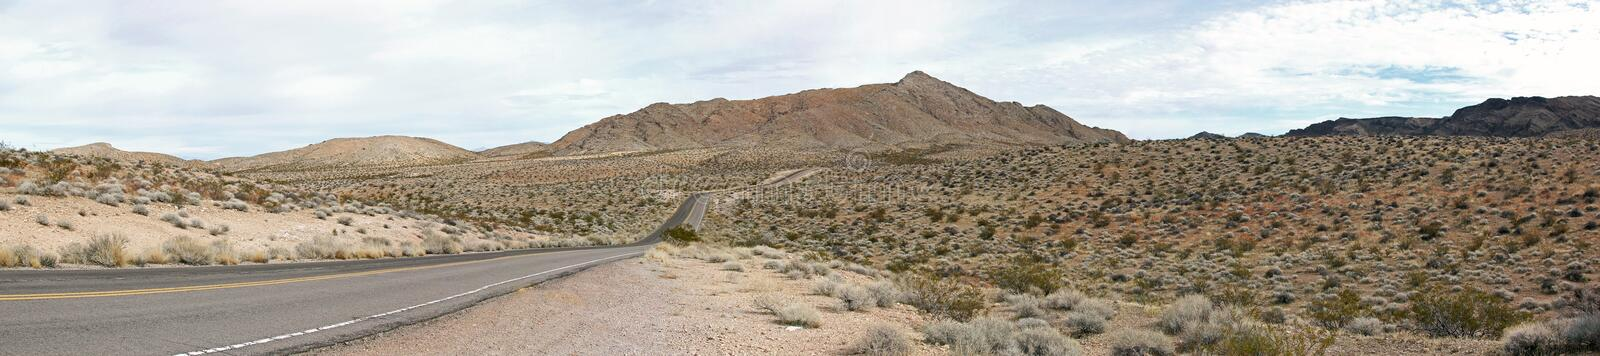 Valley of Fire Highway Through the pass stock photo